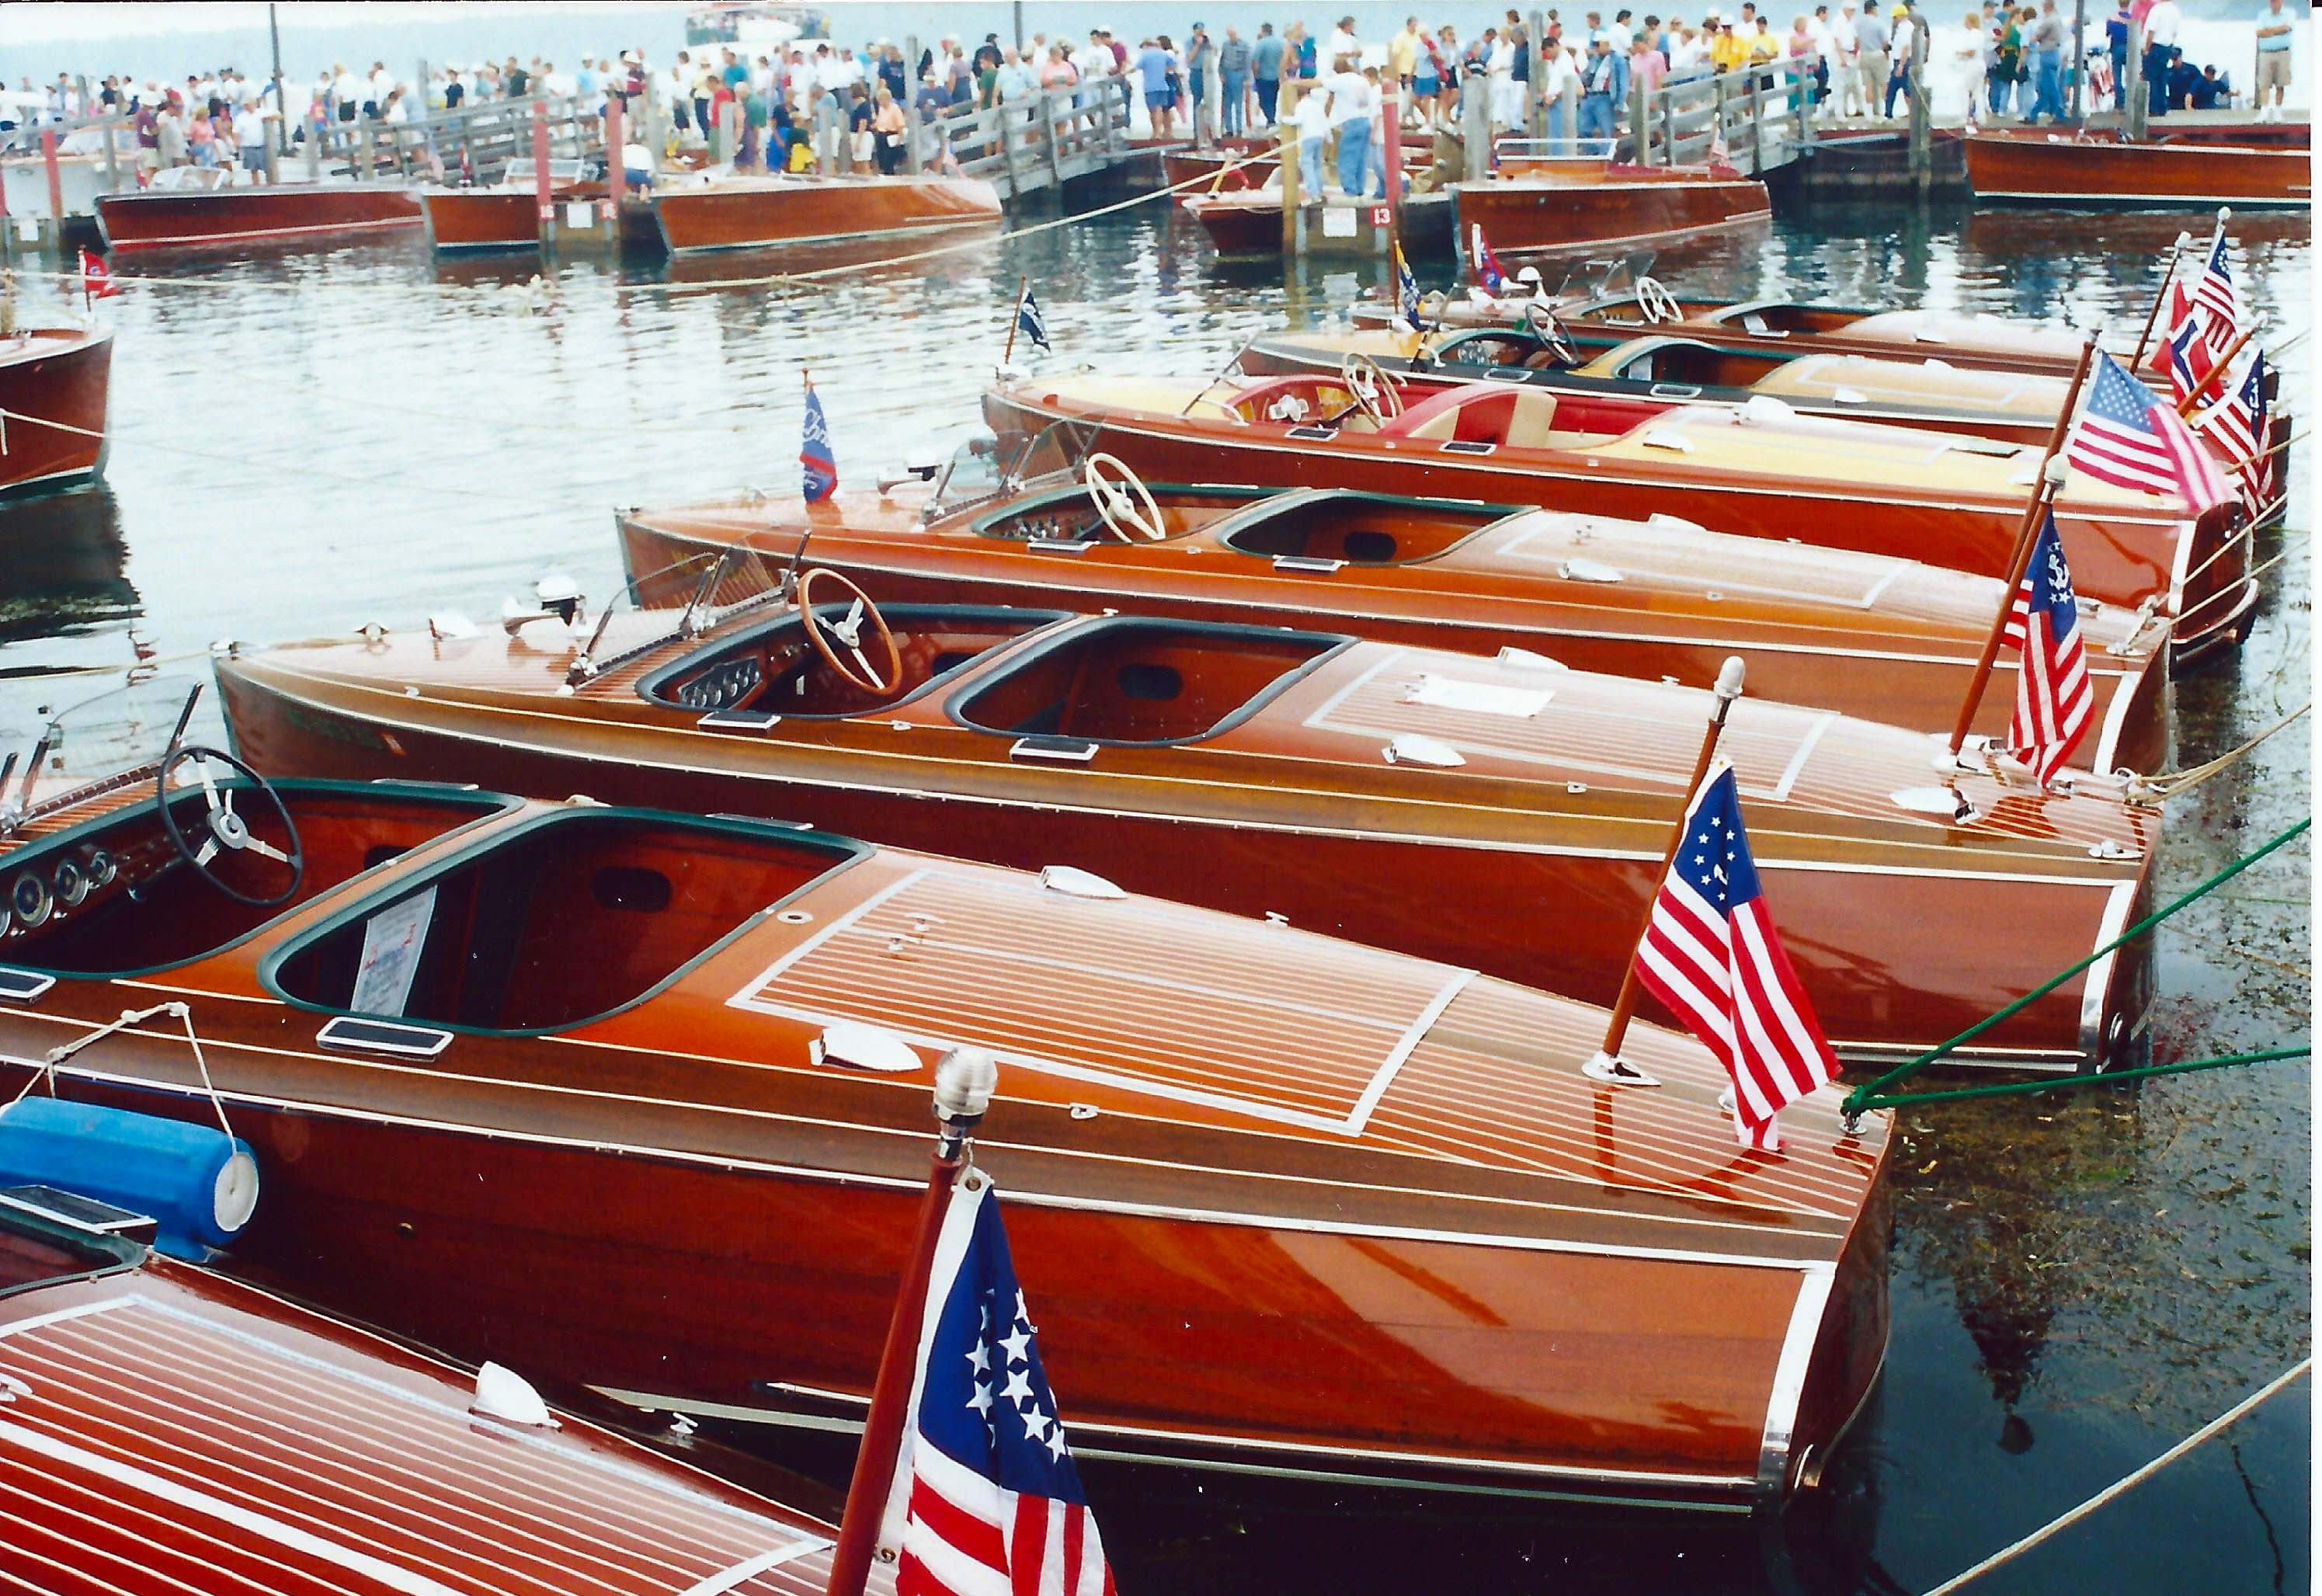 42nd Annual Les Cheneaux Islands Antique Wooden Boat Show Festival